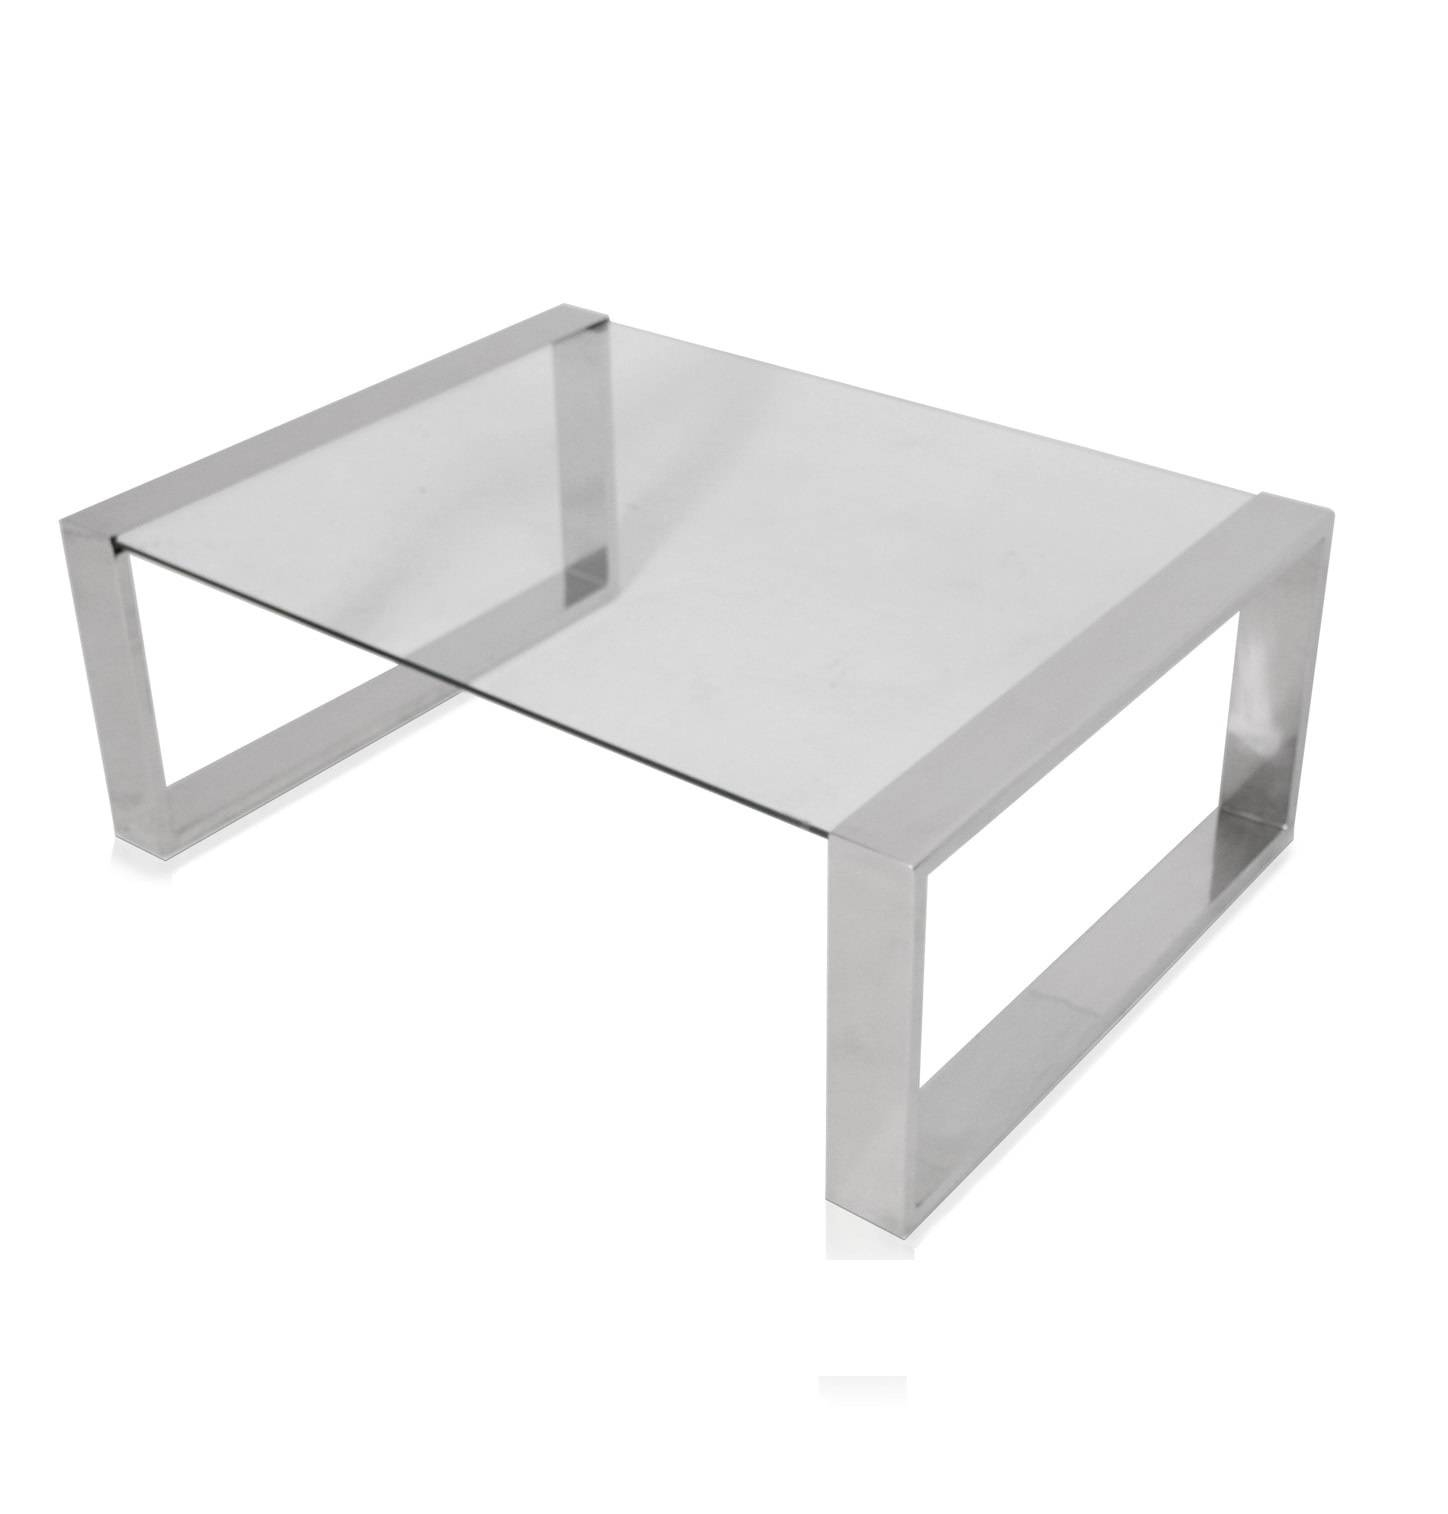 Coffee Table: Astonishing Chrome And Glass Coffee Table Ikea for White and Chrome Coffee Tables (Image 6 of 30)